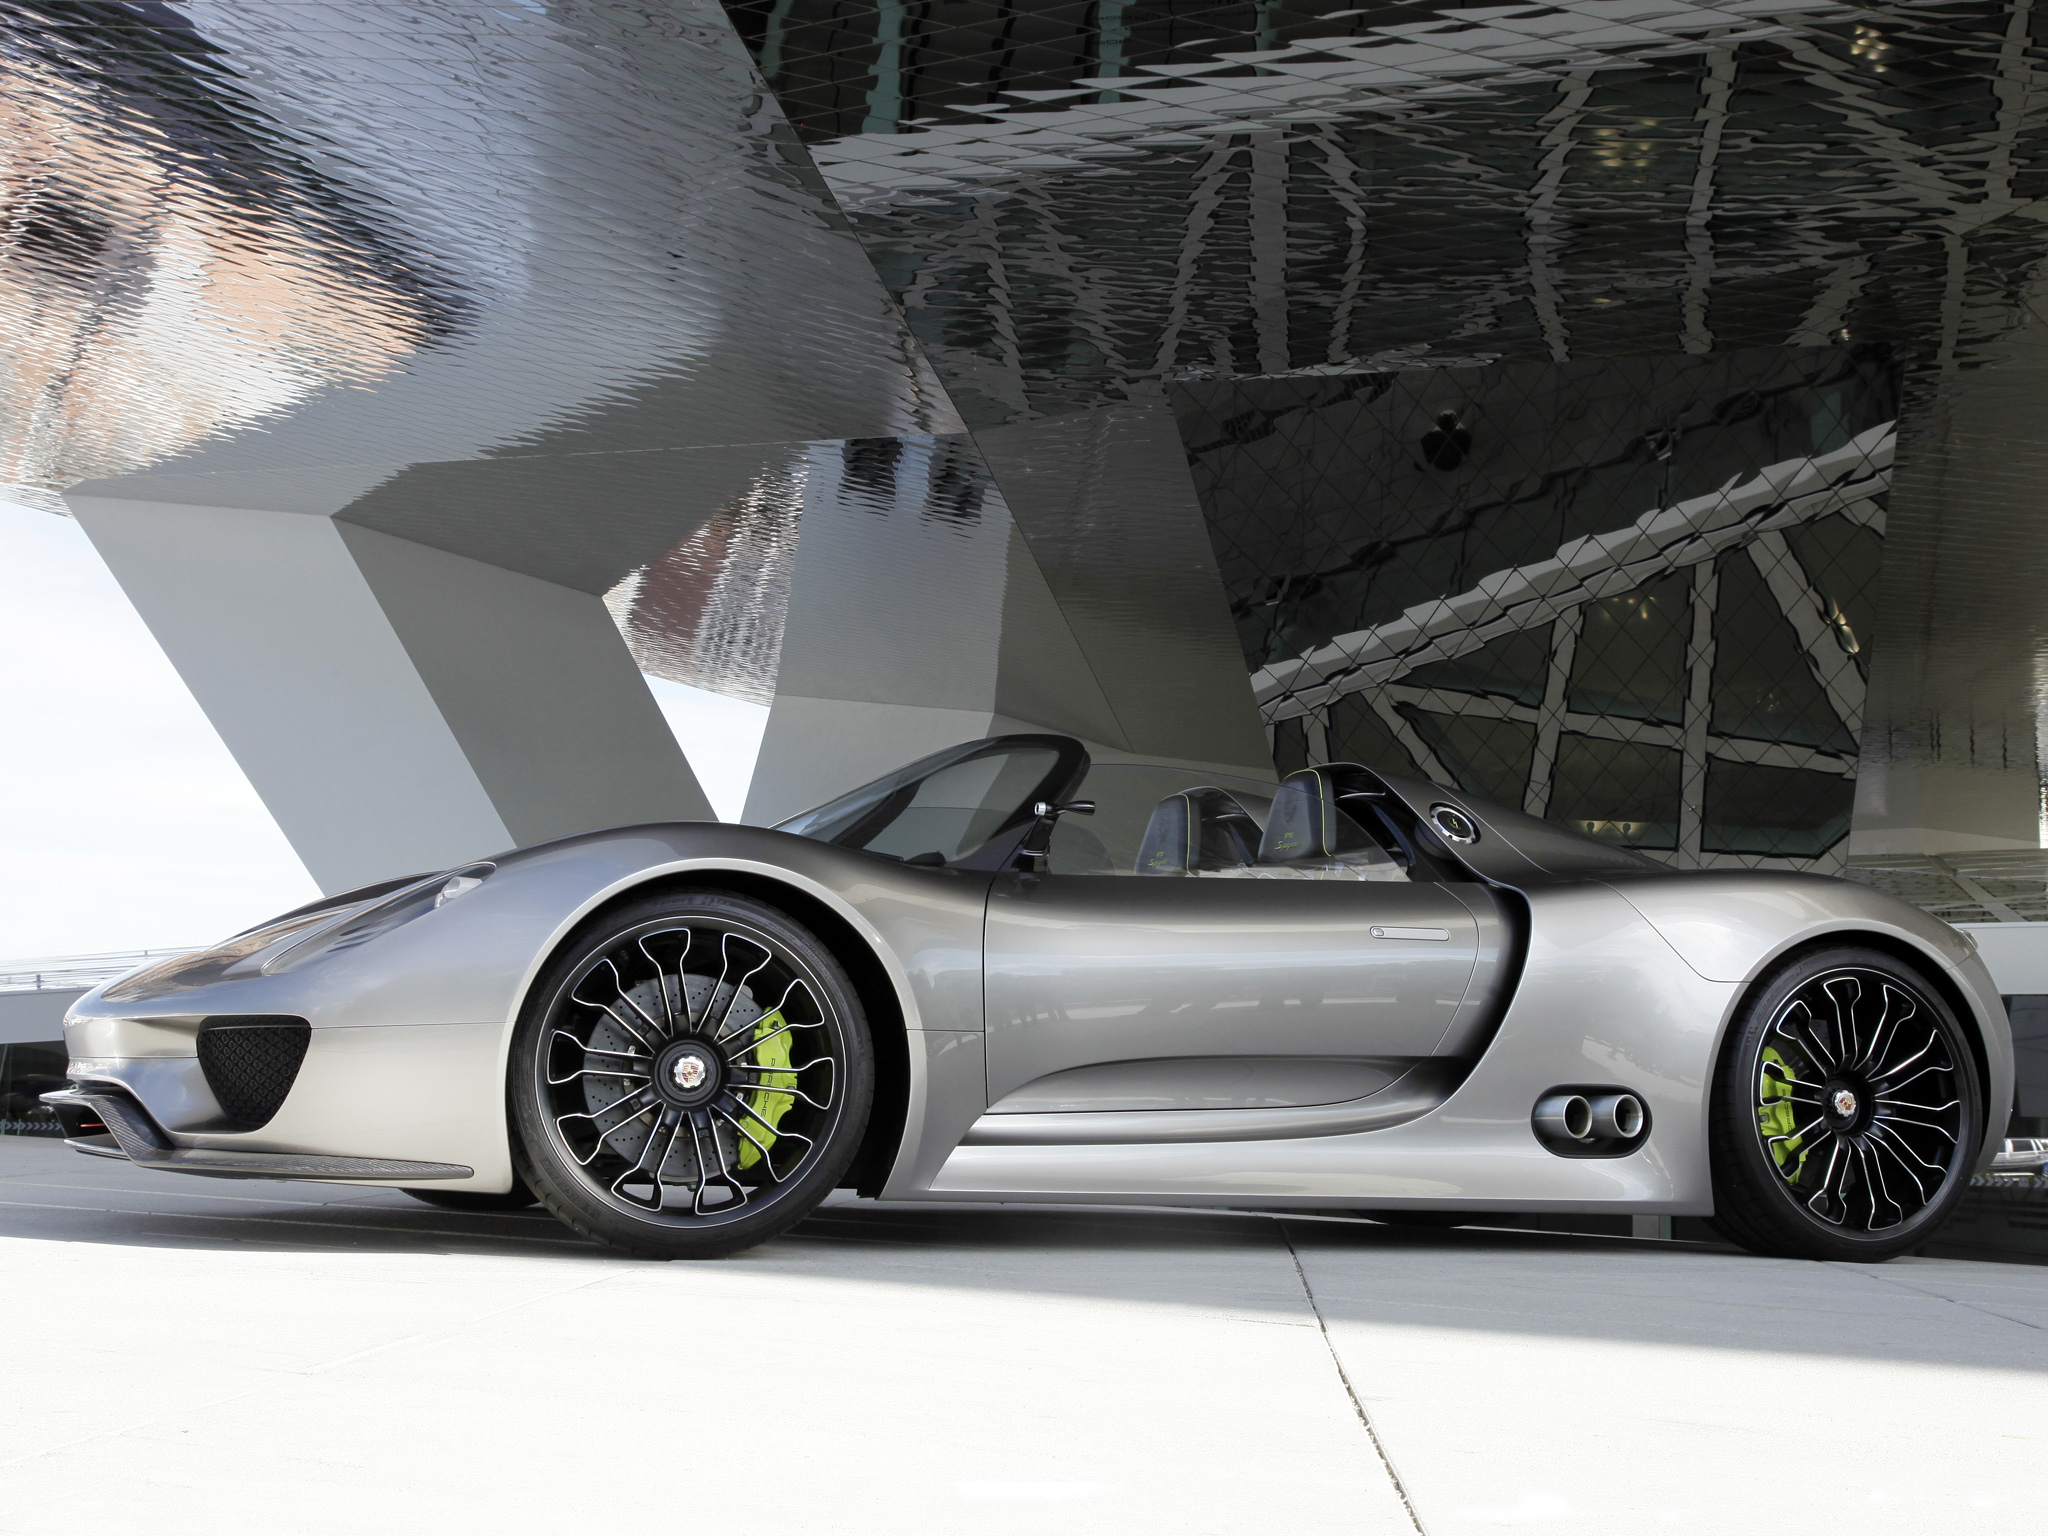 2010 porsche 918 spyder concept supercar supercars h wallpaper 2048x1536. Black Bedroom Furniture Sets. Home Design Ideas